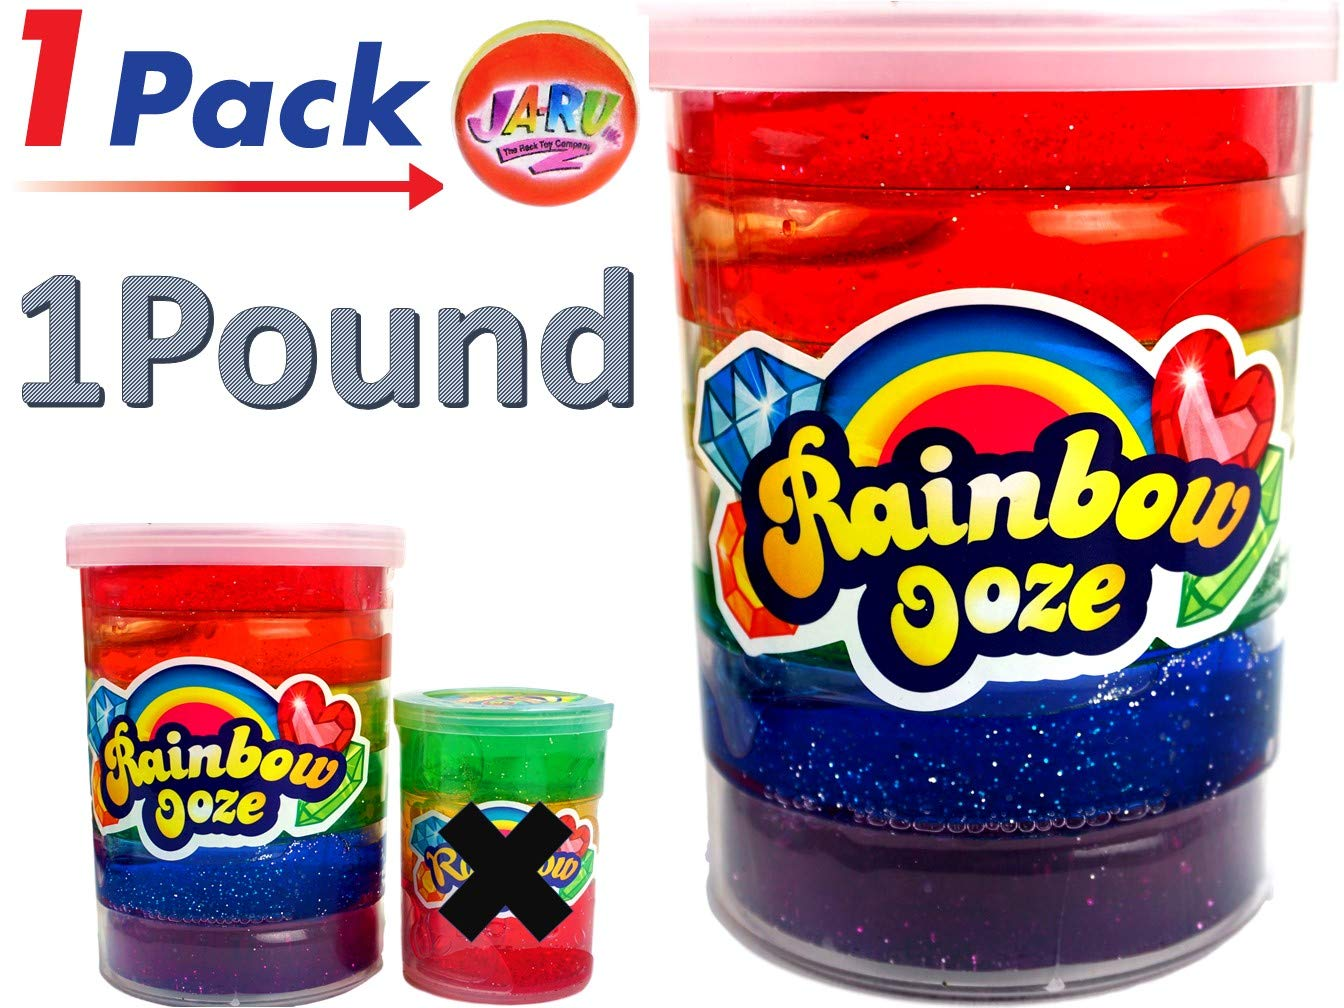 JA-RU Mega Rainbow Slime Kit 1 Pound Neon Glitter Colors (1 Unit) Unicorn Party Girls Game. Slime Squishy and Stretchy. Arts and Crafts for Girls Party Favor Toy Supplies | Item #4636-1p